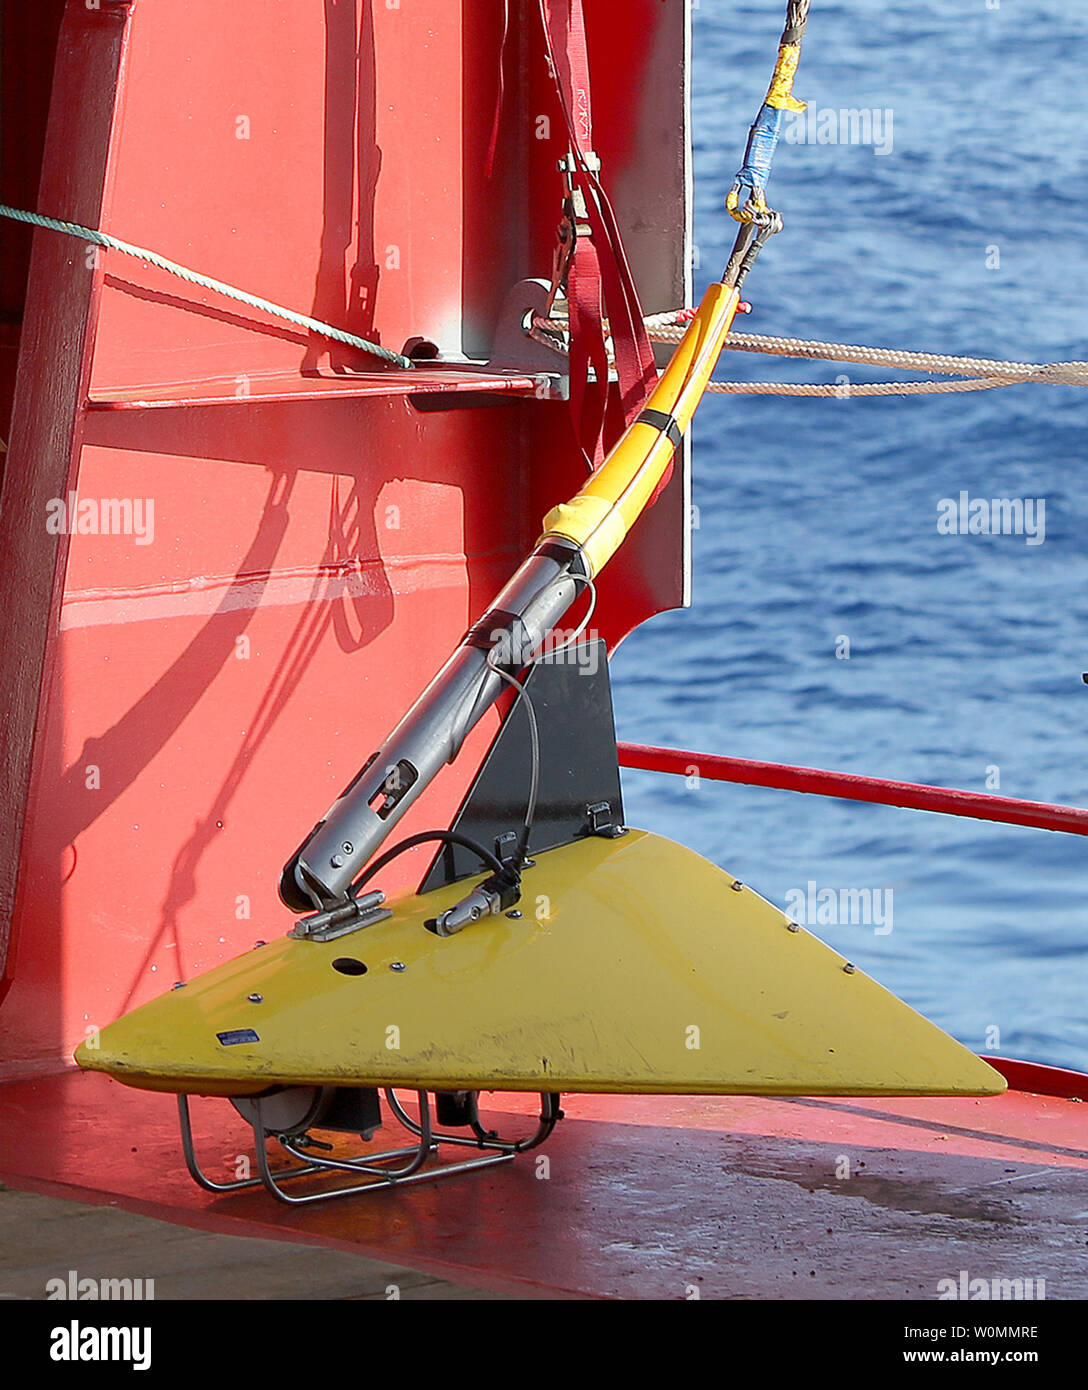 A 'towed pinger locator' is readied to be deployed off the deck of Australian Defense Vessel Ocean Shield in the search for the flight data recorder and cockpit voice recorder of a Malaysia Airlines jetliner missing in the Indian Ocean, about 1,000 miles off the coast of Perth, Australia.  The U.S. Navy 'towed pinger locator' connected to the Ocean Shield picked up signals consistent with that of the missing jetliner it was announced today April 7, 2014.   UPI/Kelly Hunt/Australian Defense Force - Stock Image